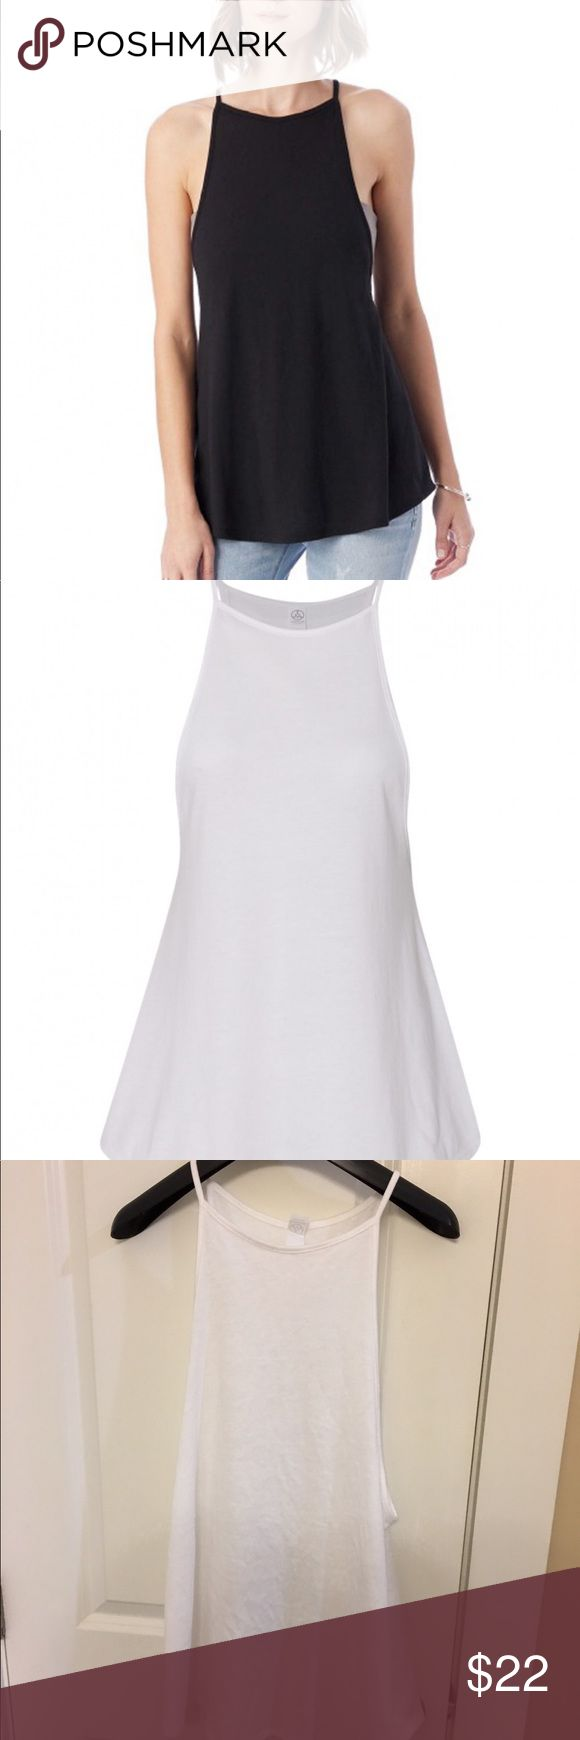 Alternative Apparel VIP 50/50 tank Never worn!! Beautiful white top. Would look great with a bandeau. Cover photo is in color Silver. Item for sale is white! Alternative Apparel Tops Tank Tops